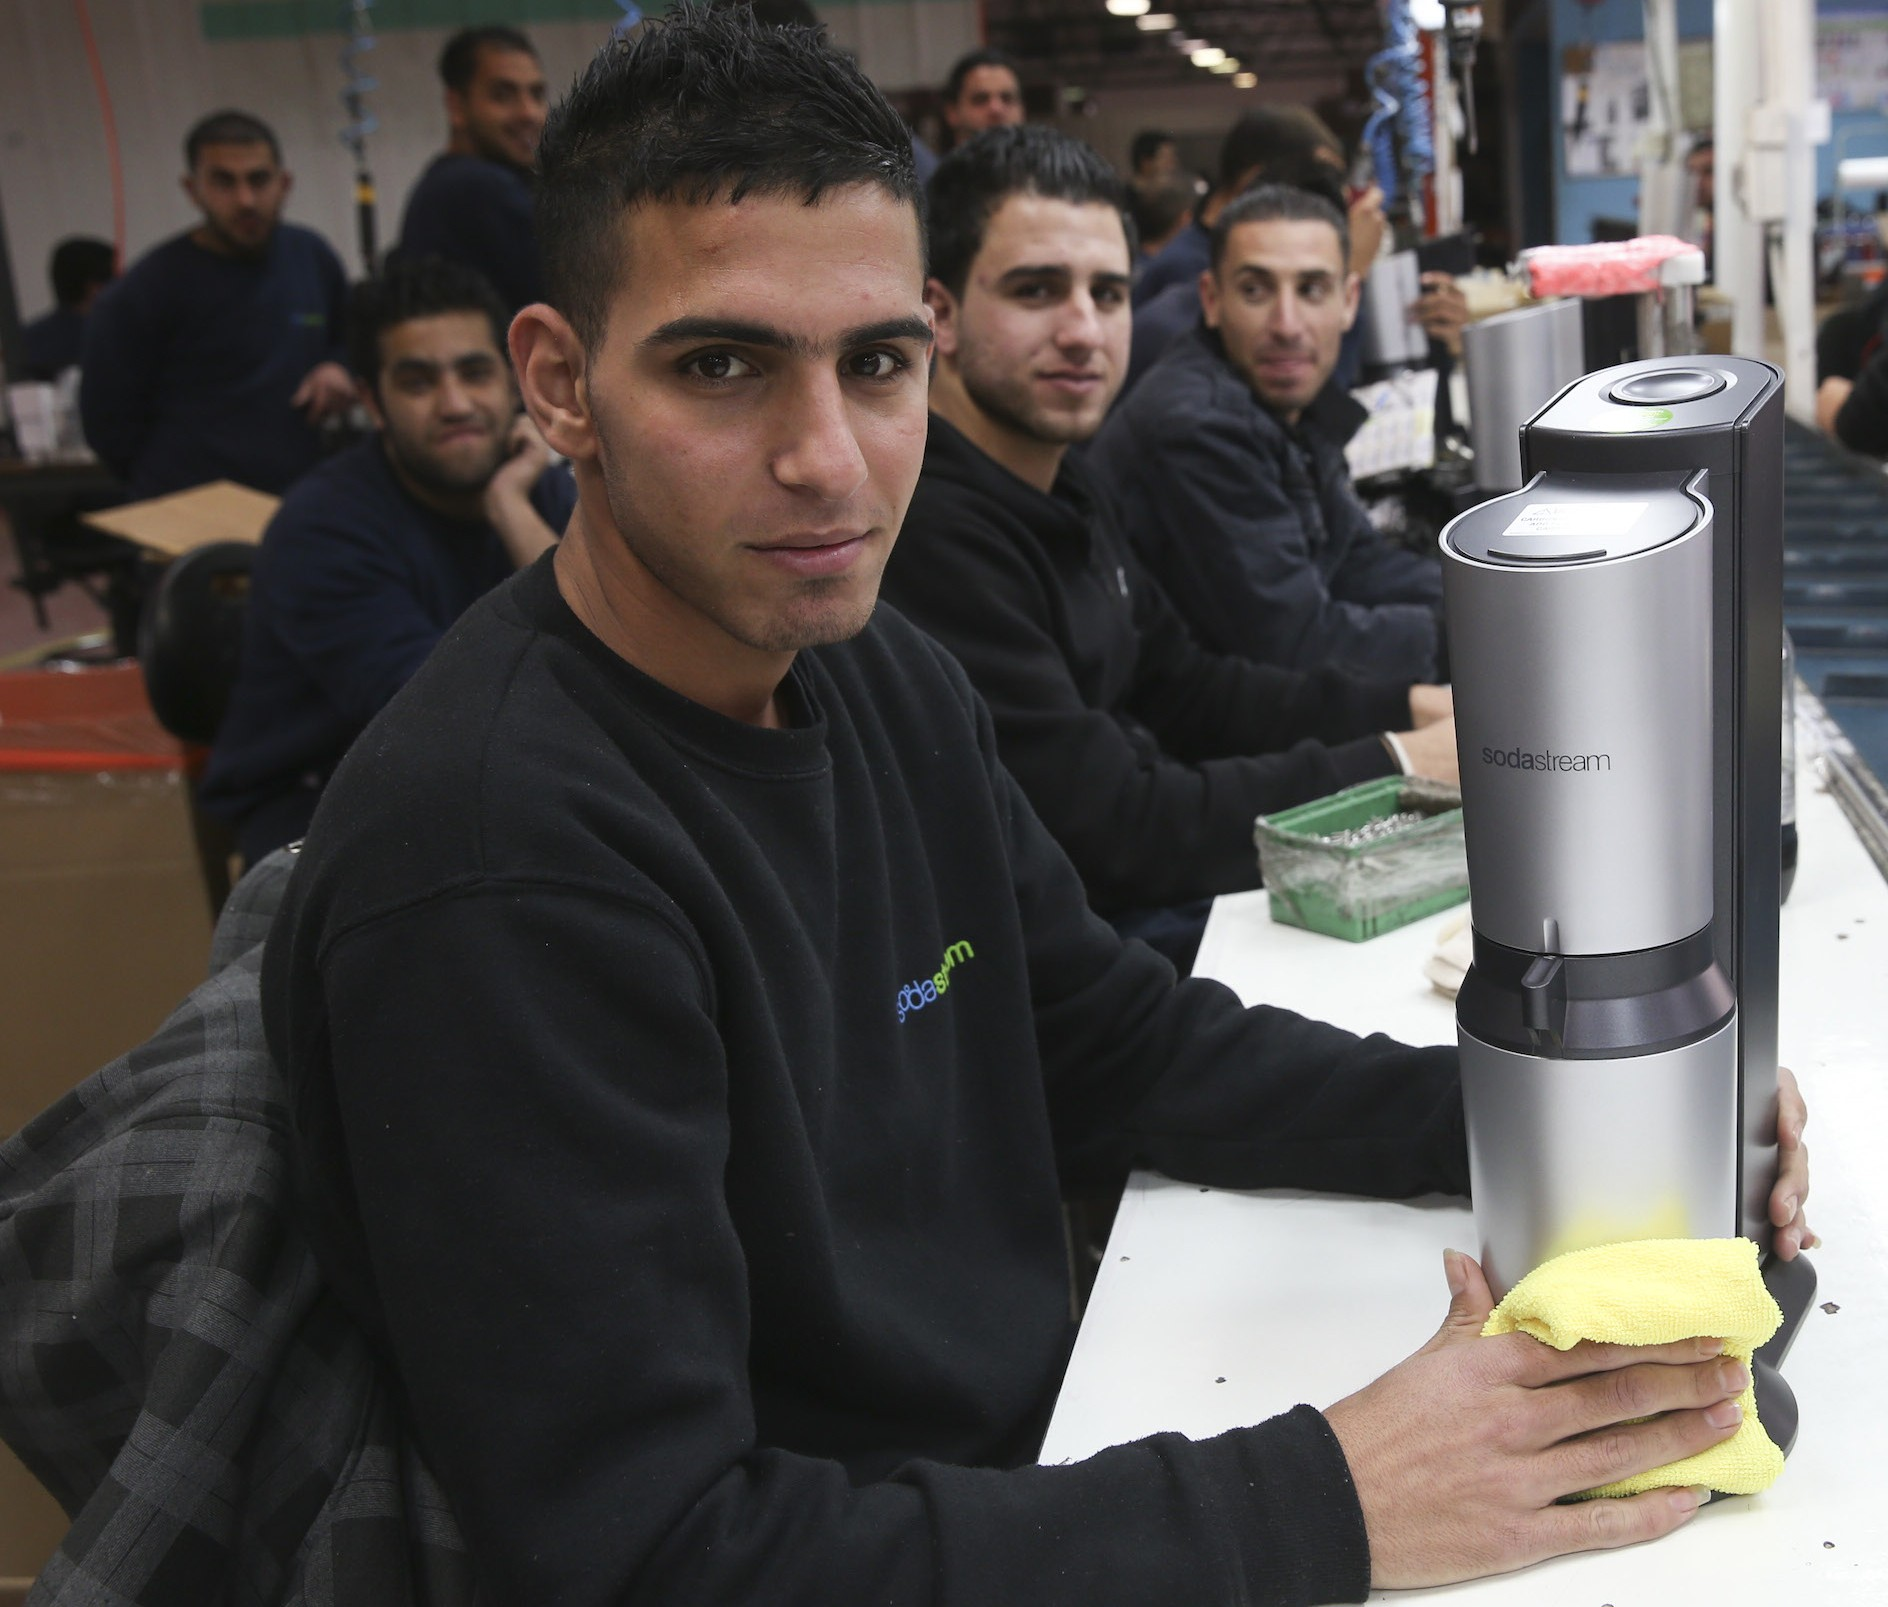 Some of the hundreds of Palestinians who work at SodaStream's West Bank factory that is shutting down. (Nati Shohat/Flash90)